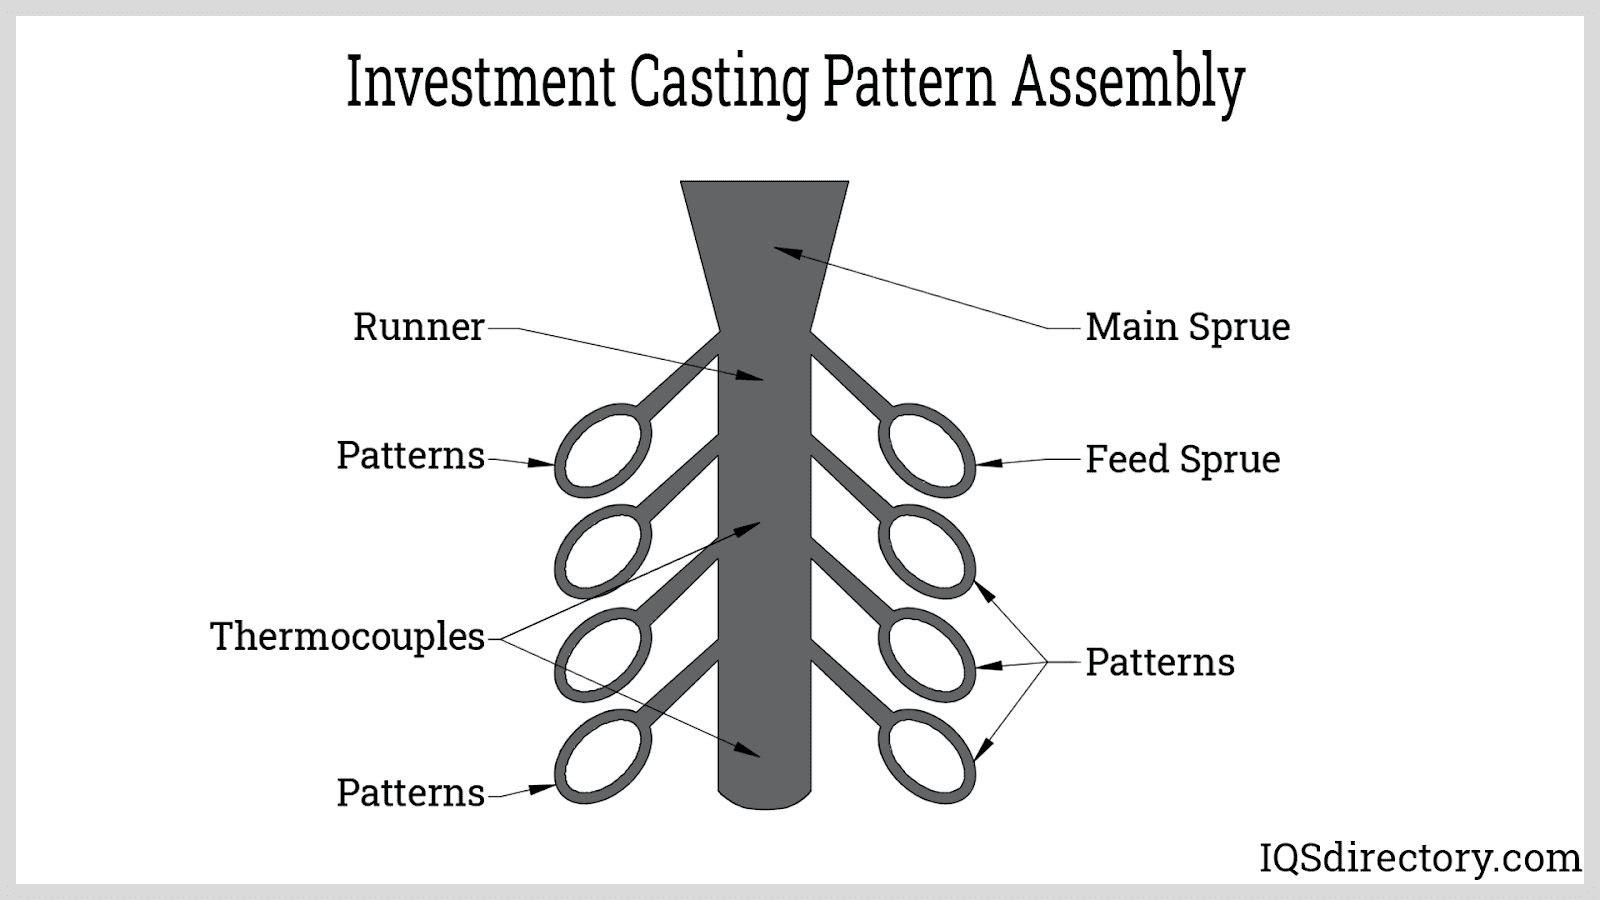 Investment Casting Pattern Assembly